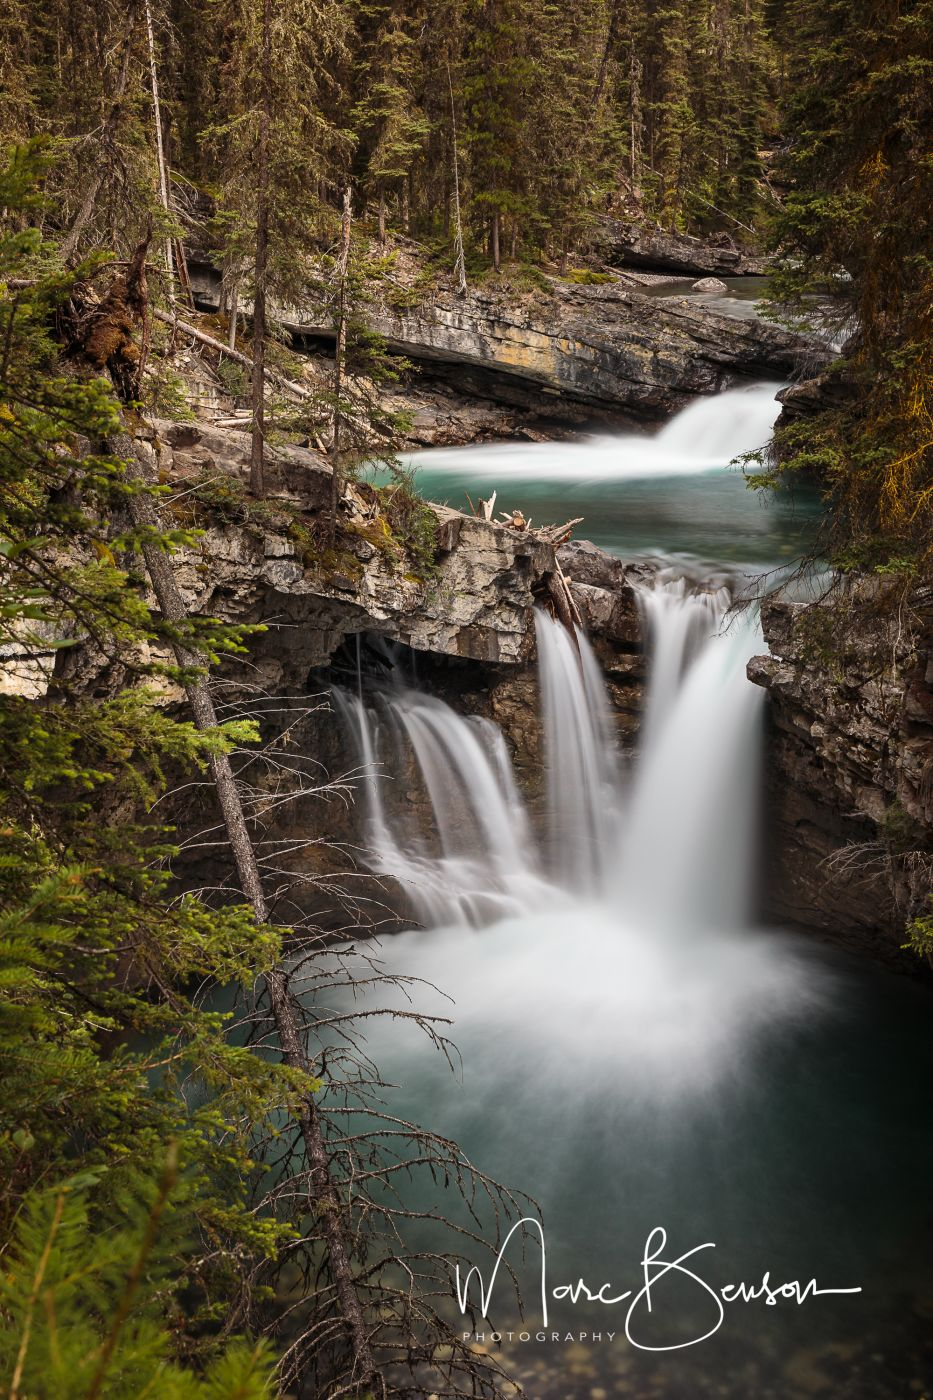 Middle Falls, Johnston Canyon Trail, Canada